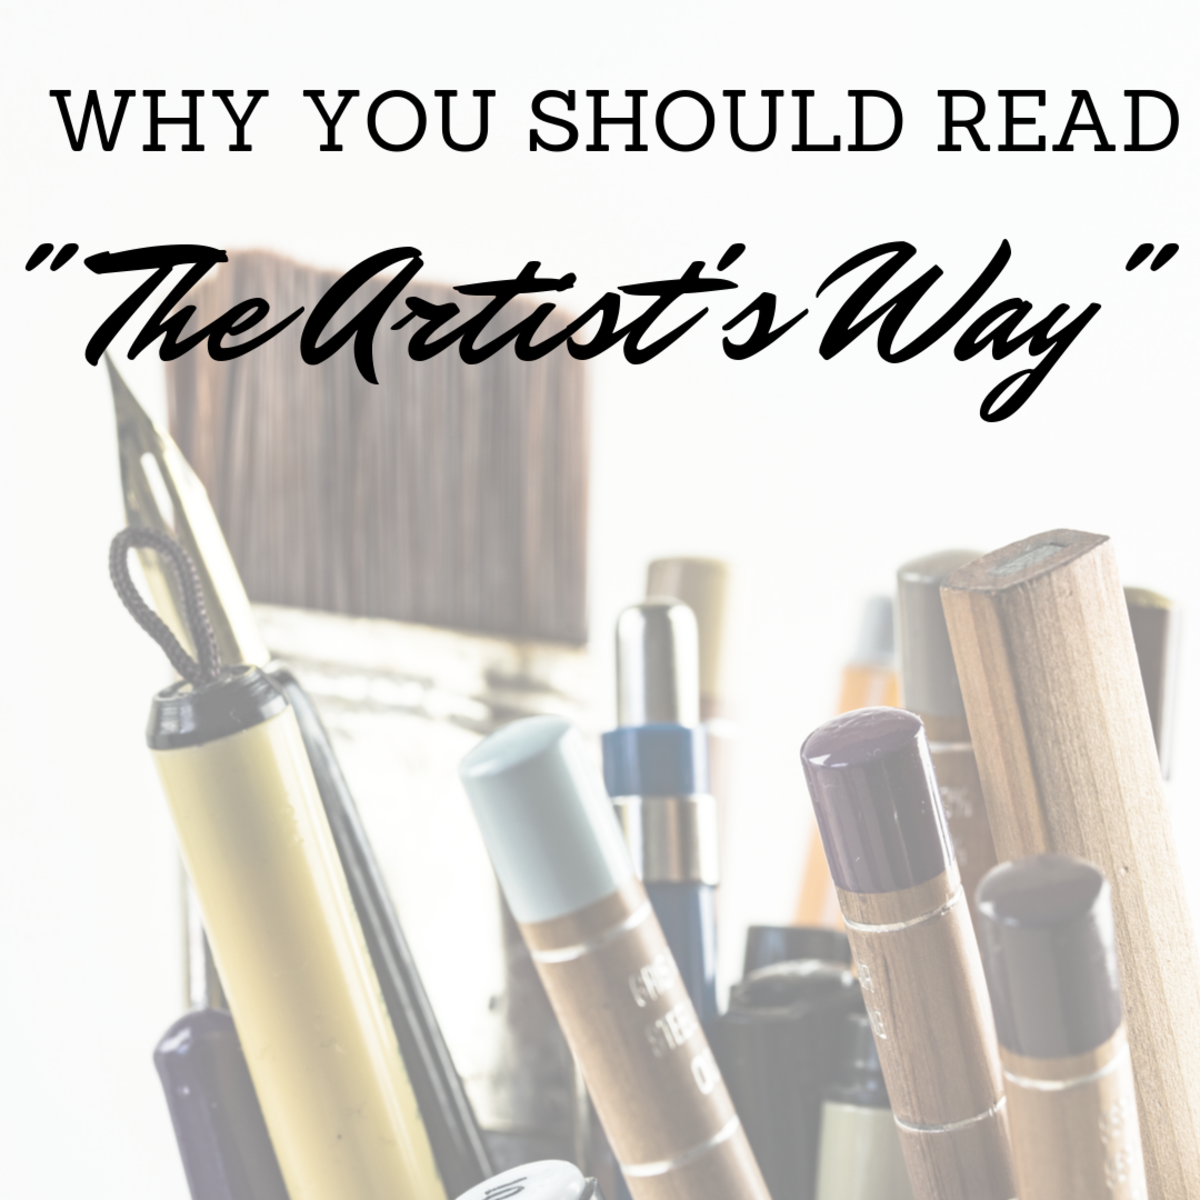 Suggested Reading for Anyone Dealing With Writer's Block